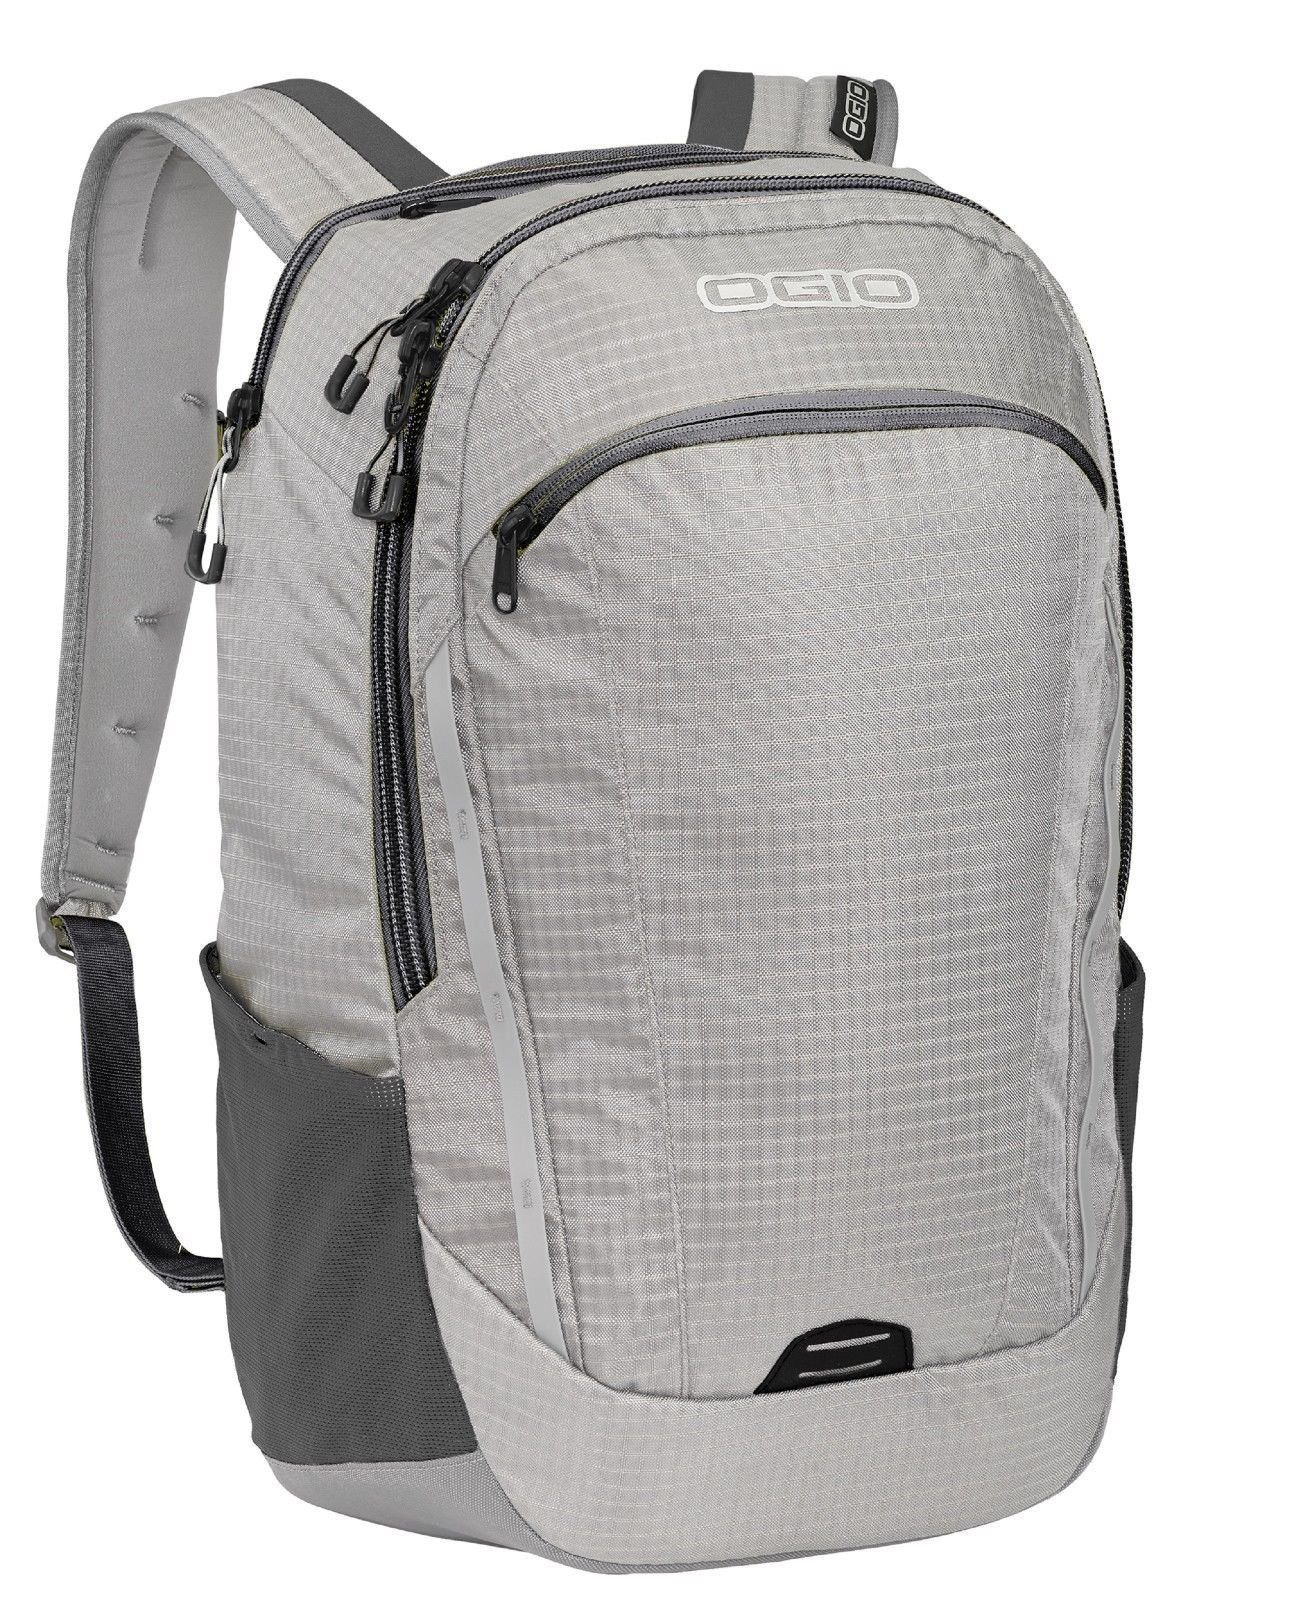 OGIO 411094 Shuttle Pack 15'' Laptop/MacBook Pro Backpack, Grey/Silver